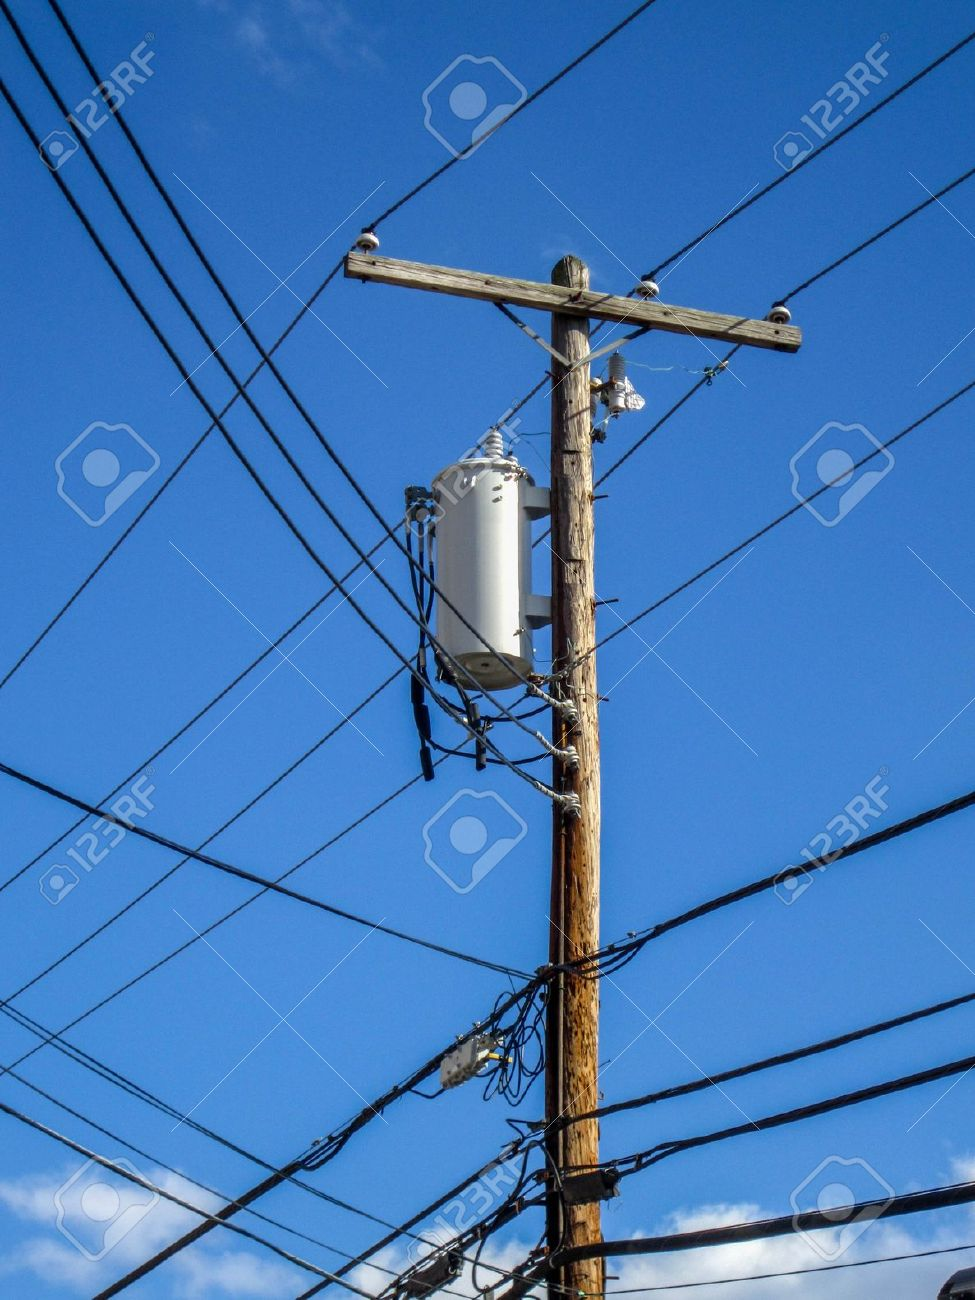 Transformers Of An Electrical Post With Powerlines Against Stock ...